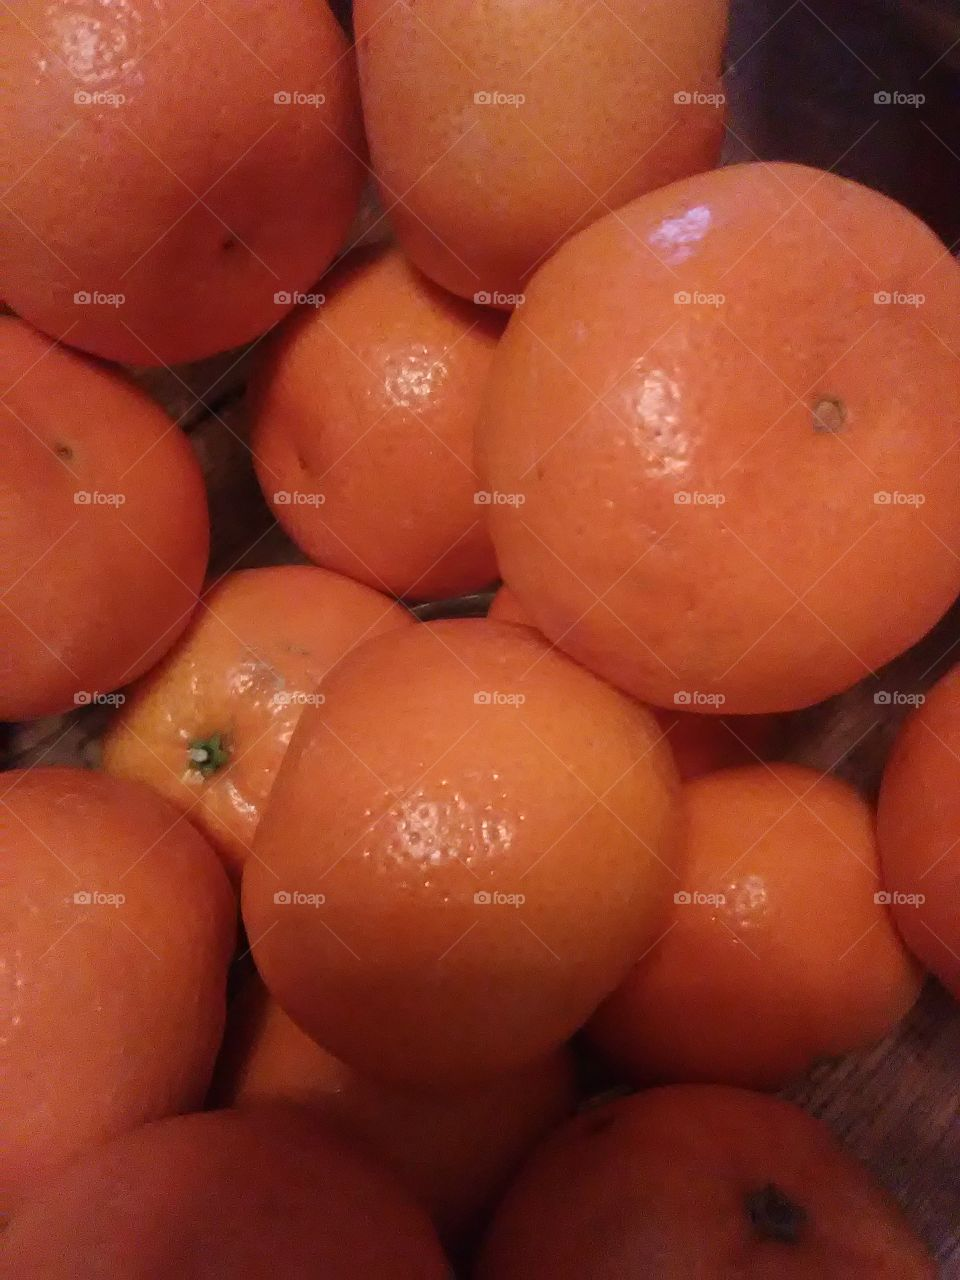 a beautiful fresh bowl of mandarins .. makes me  think of happy thoughts.